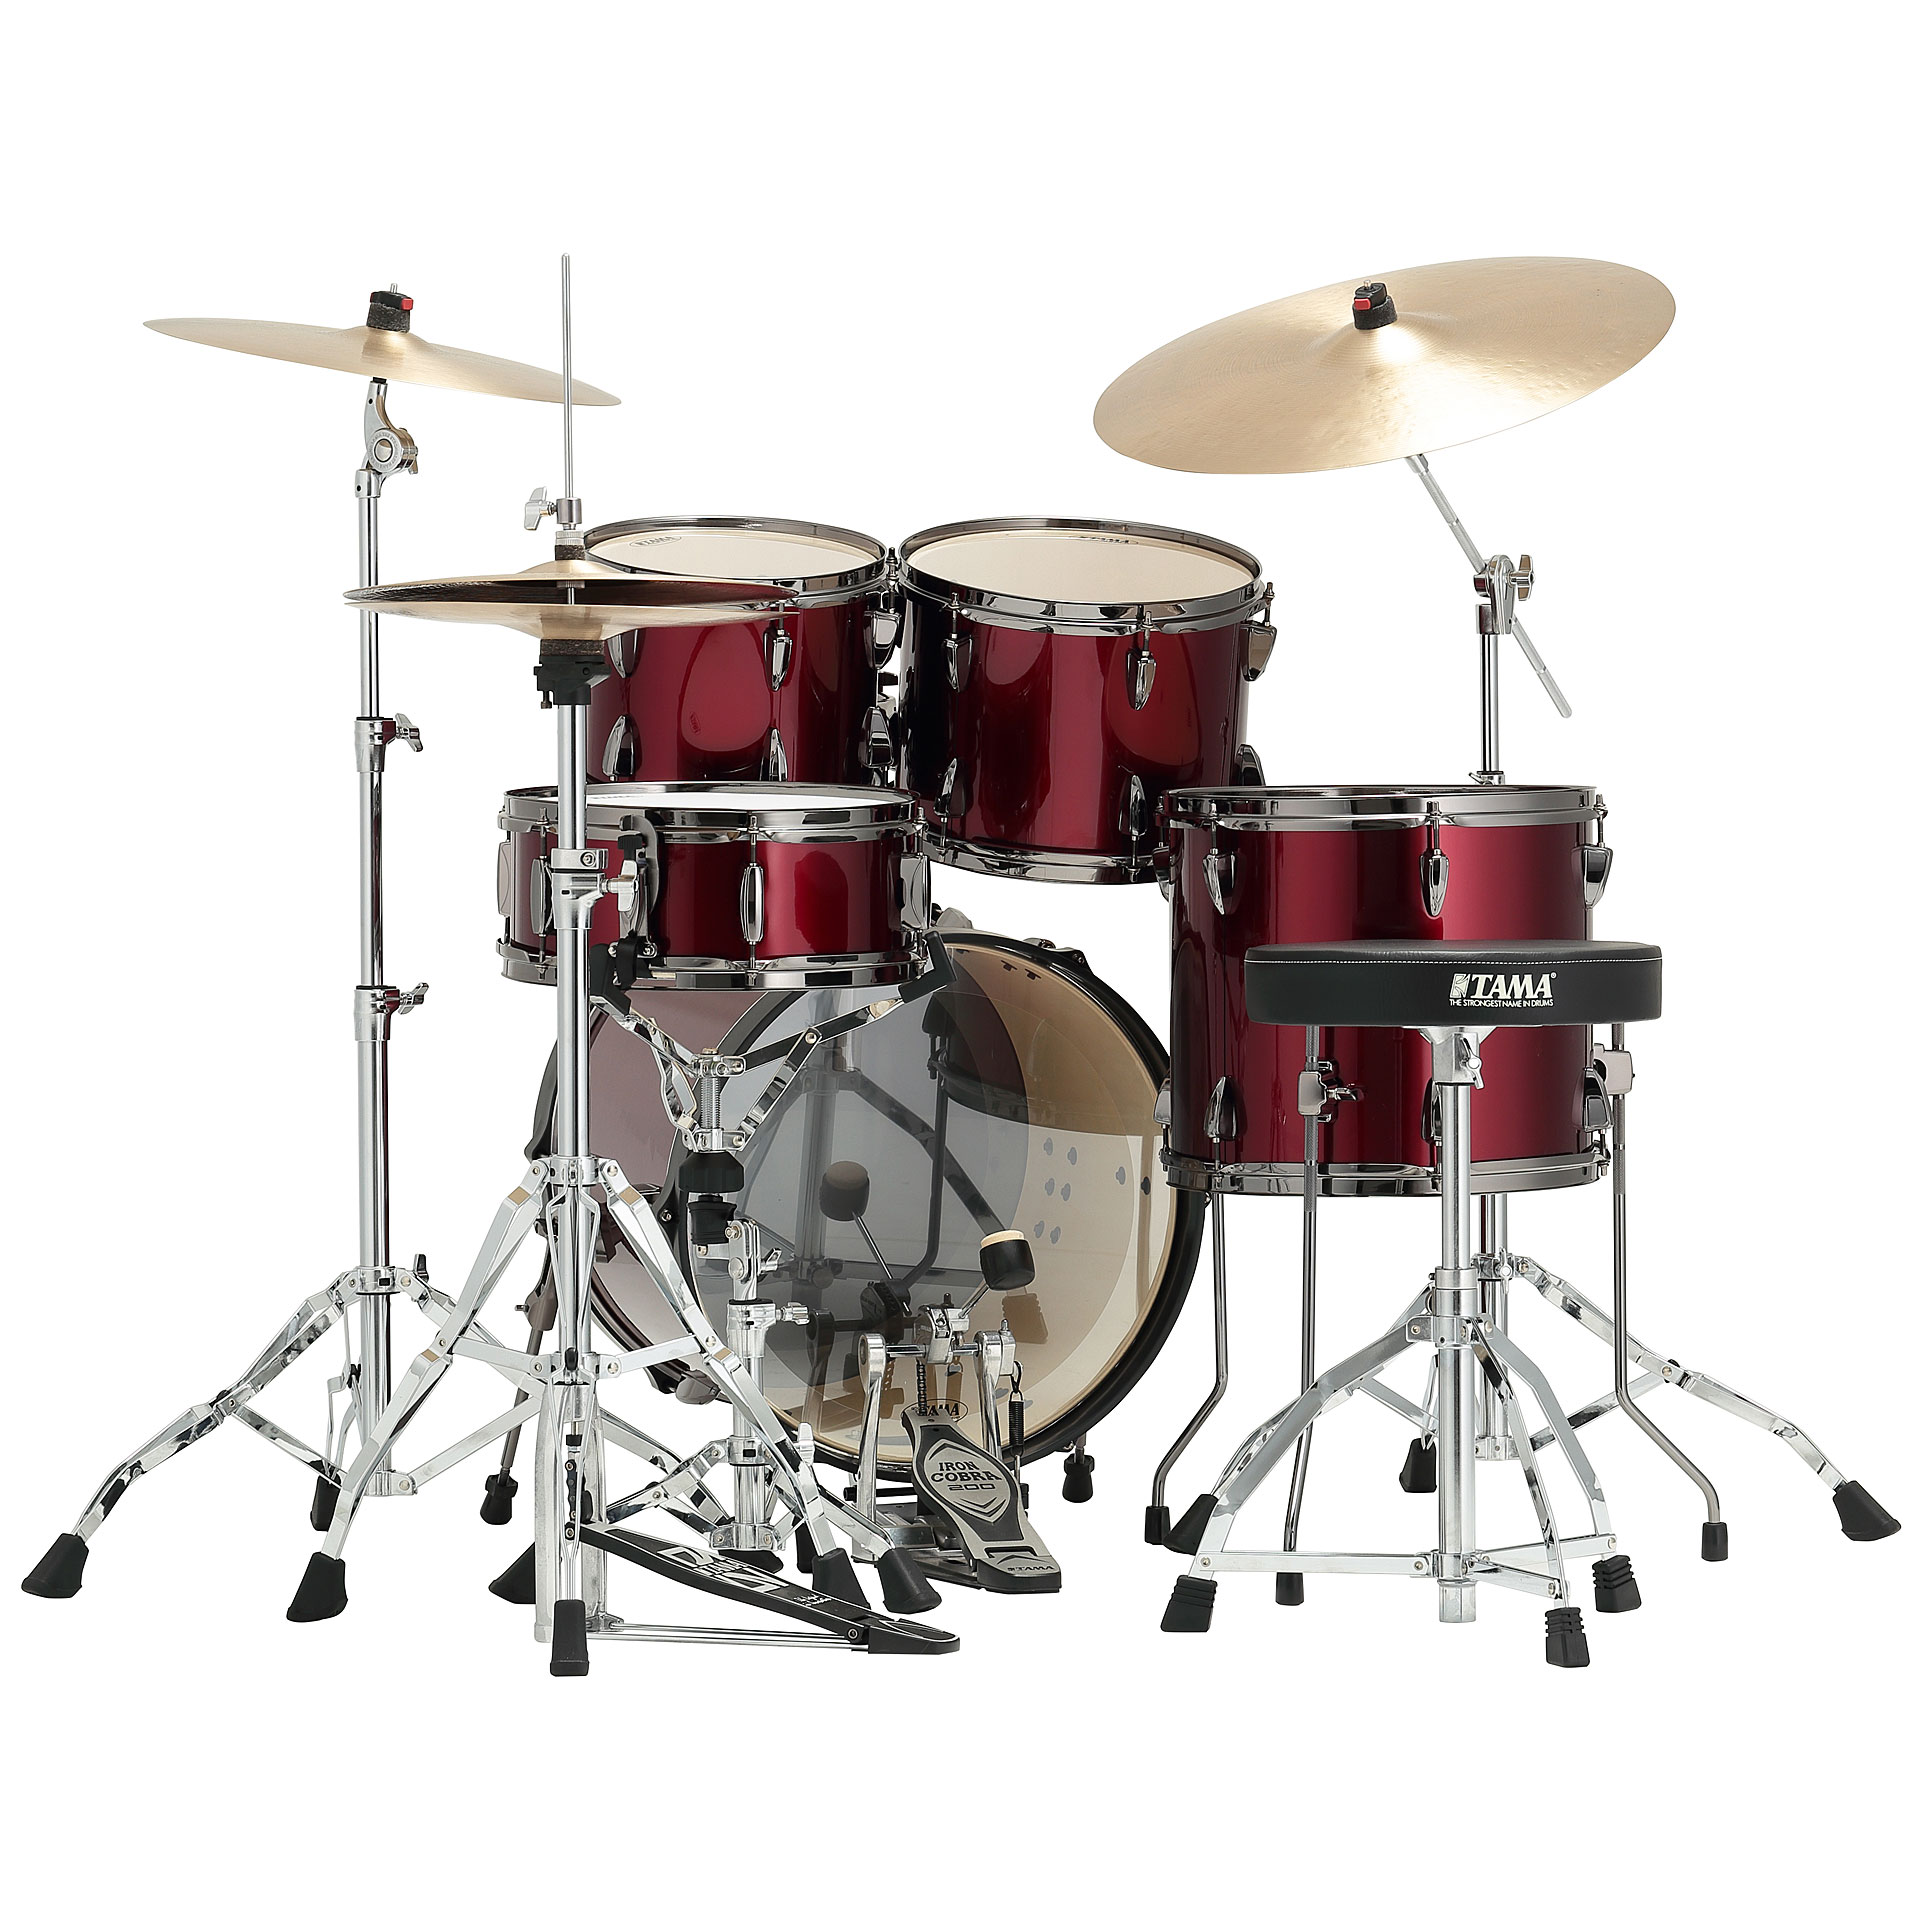 Tama imperialstar 18 vintage red drum kit for Classic house drums